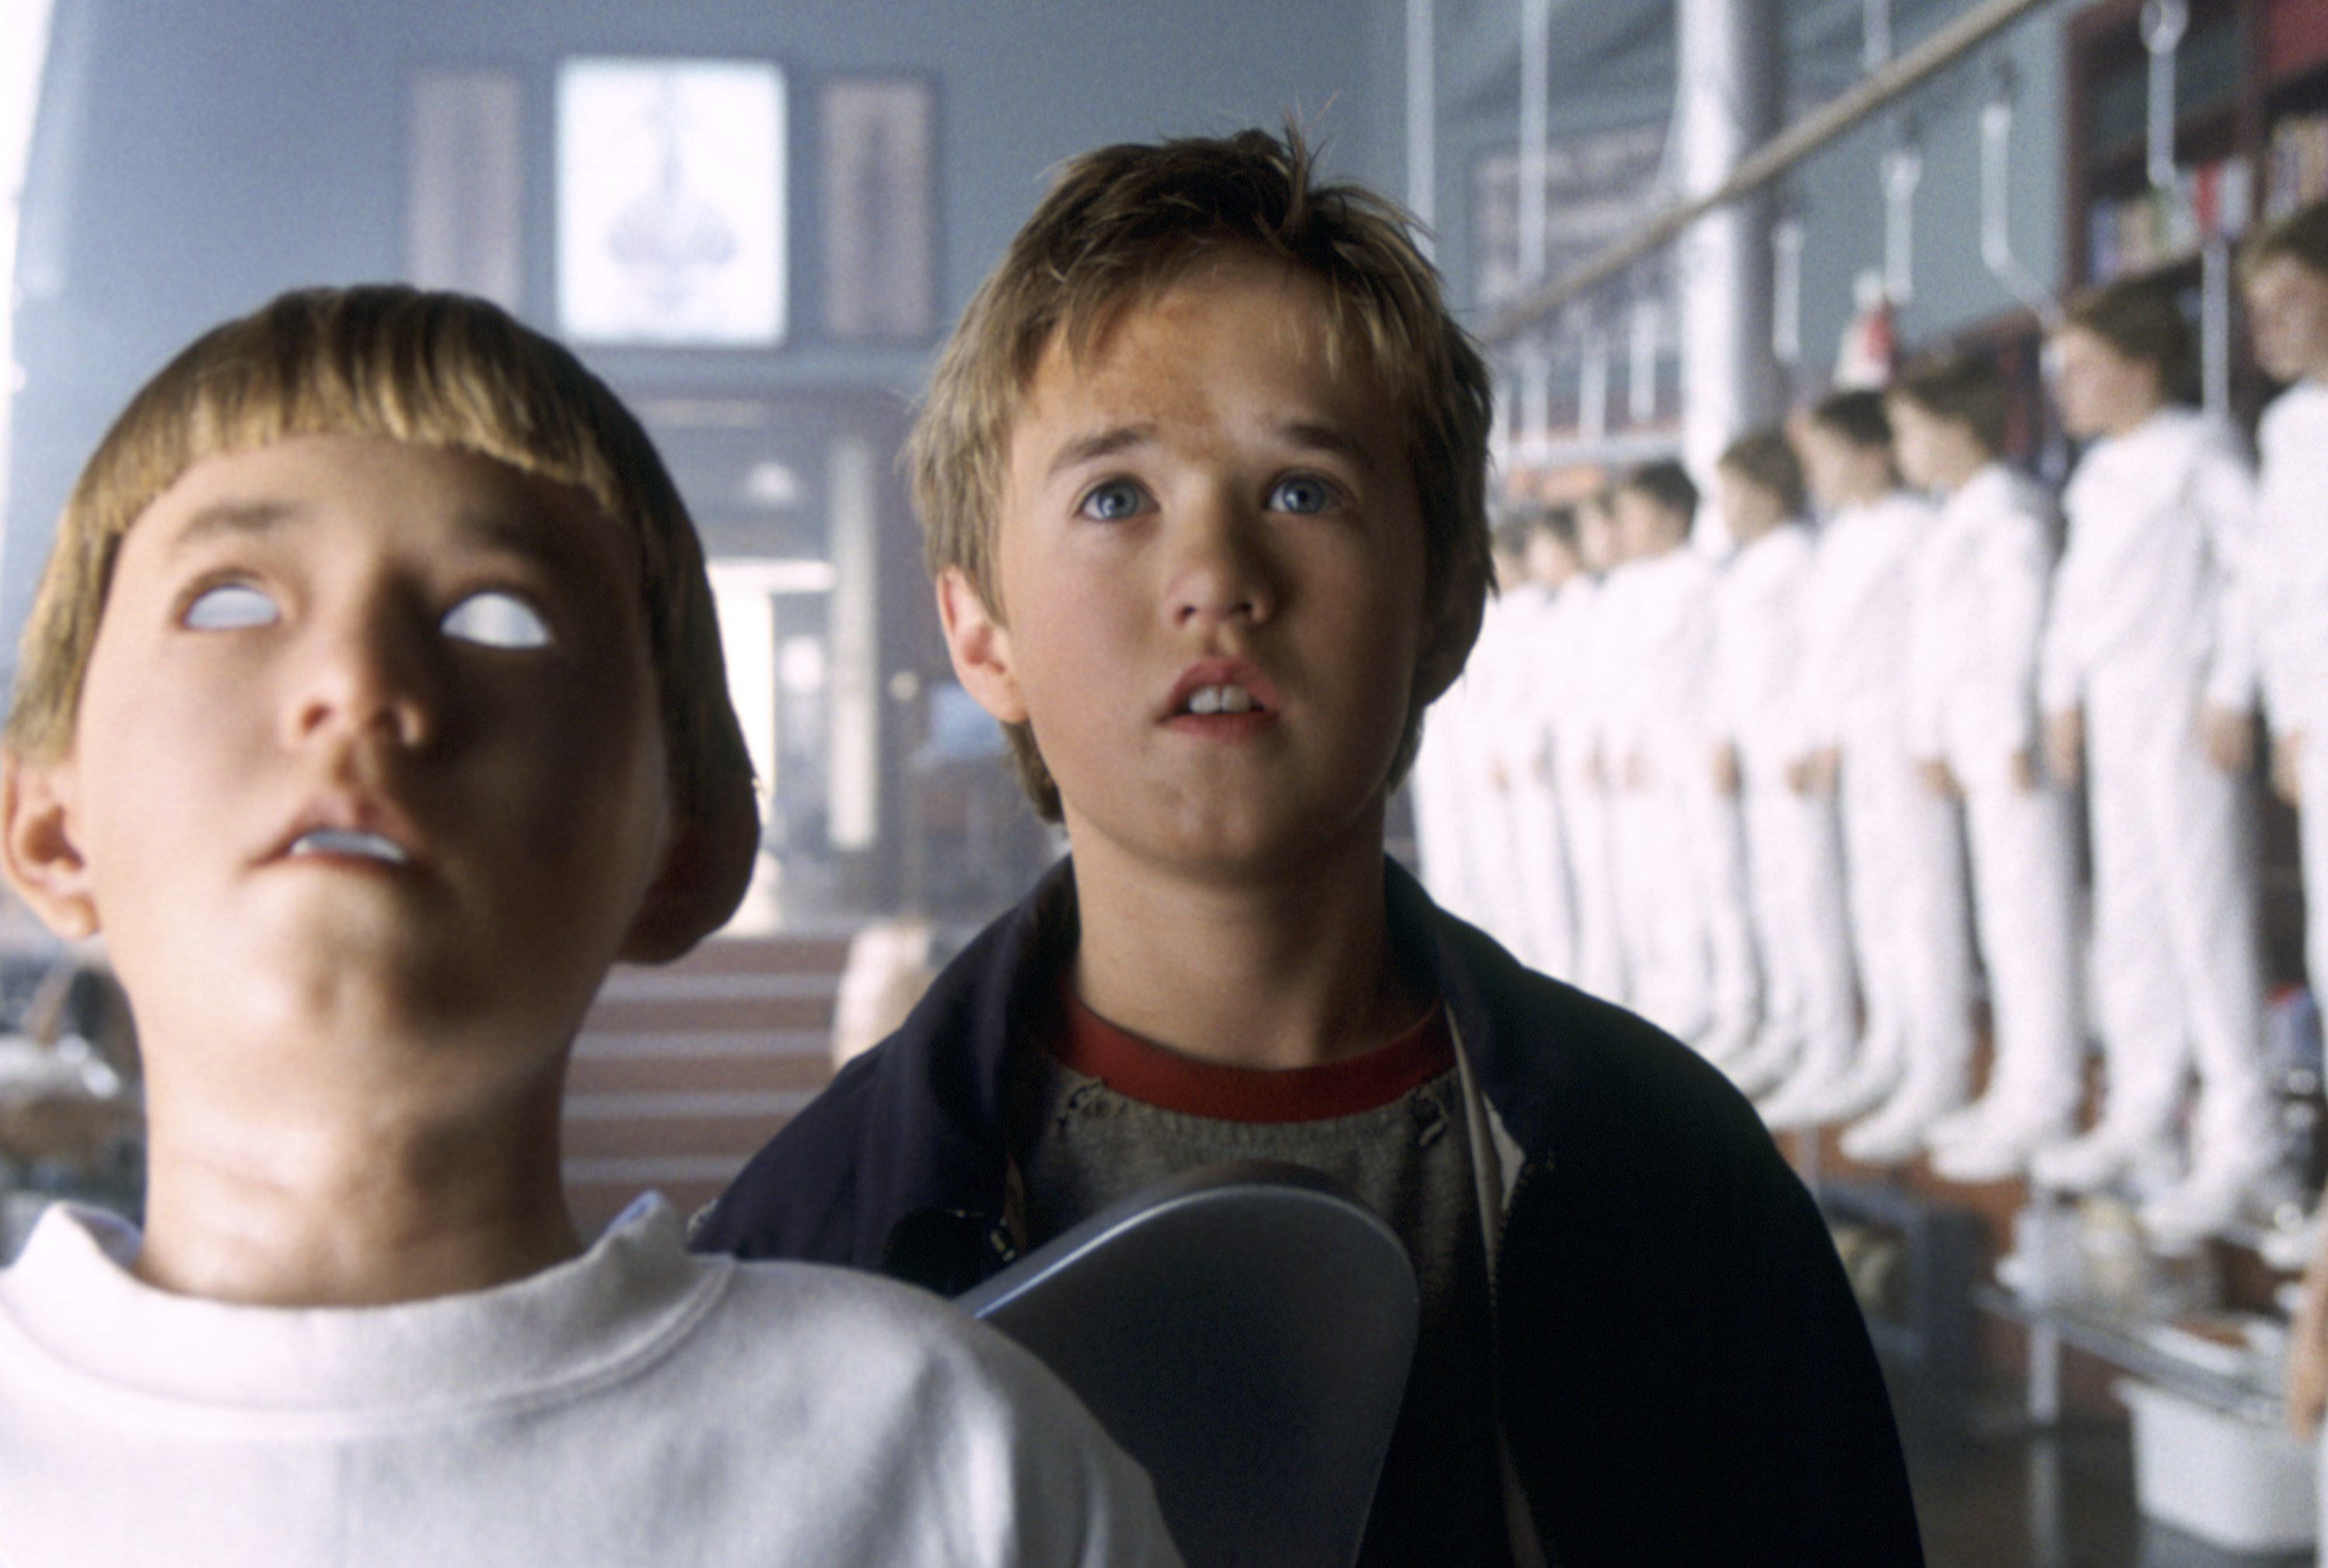 A young child, David, is surrounded by child-like, robotic figures all dressed in white. The one next to him looks very similar to himself.